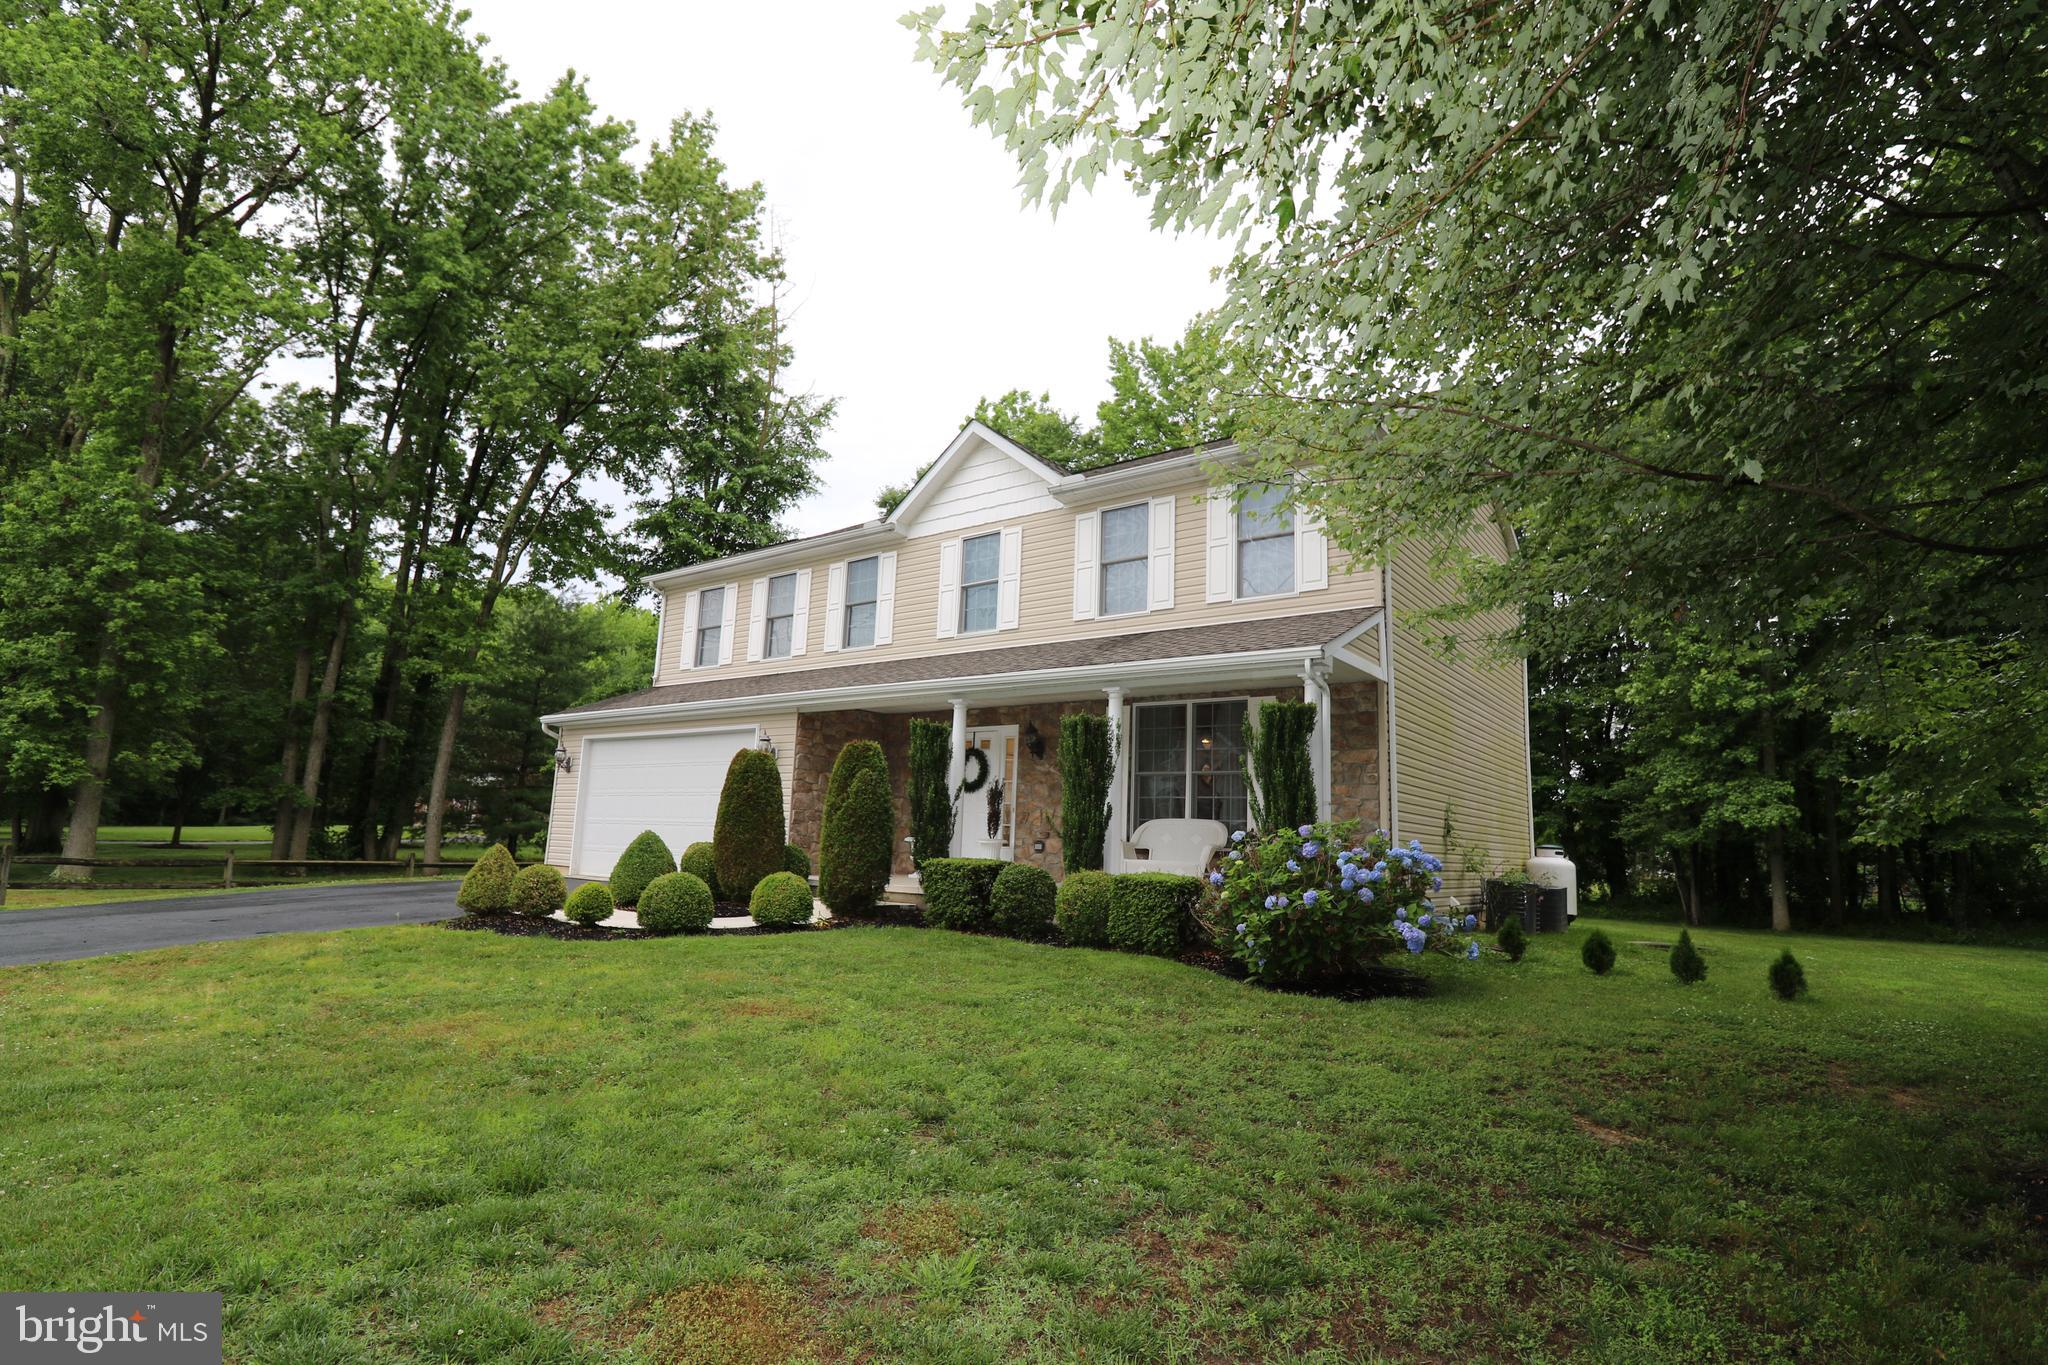 "A RARE opportunity to own a beautiful home on a  partially wooded, .45 acre lot, that's not in a neighborhood. This well appointed 2-Story Colonial features: Hardwood flooring, 9' ceilings,  2nd floor laundry, 4 spacious bedrooms and a gourmet kitchen boasting Stainless Steel appliances, 42"" cabinets , center island and Granite countertops. There is also a full unfinished basement ready to be converted into your very own Home gym, Theater or Bar/Billiard room? Schedule your showing today, you'll be glad you did!"